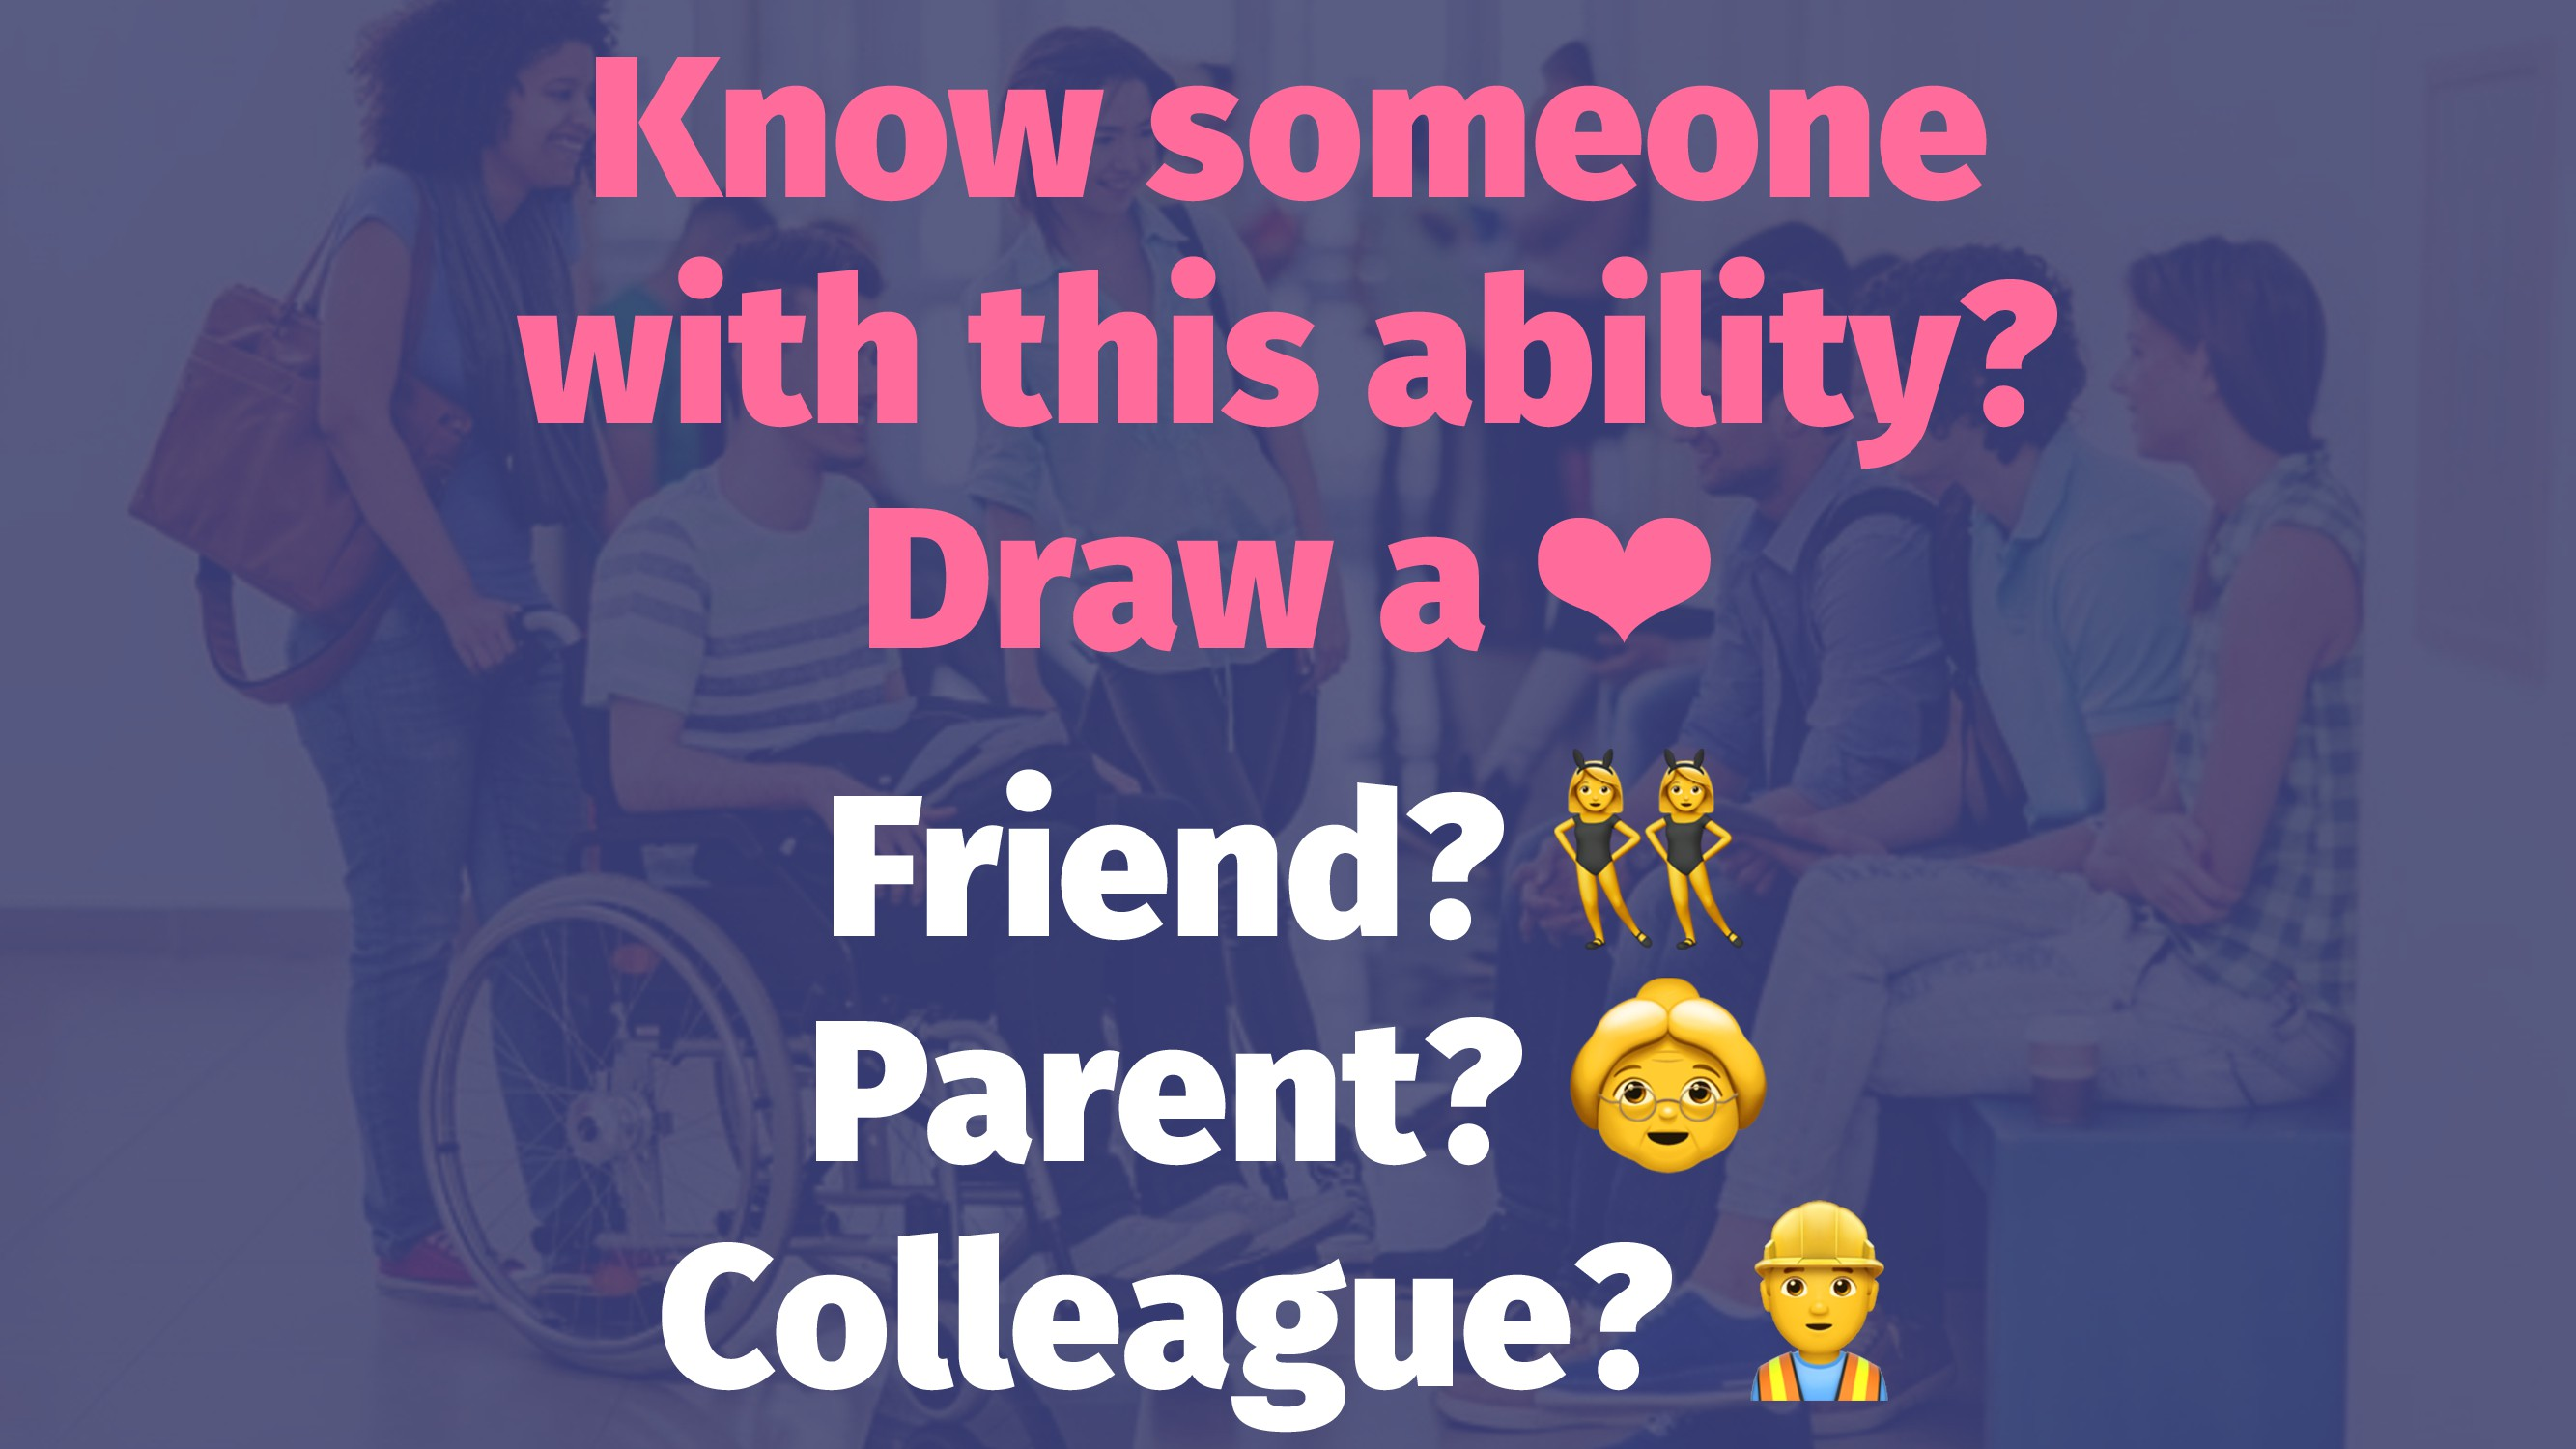 Know someone with this ability? Draw a ❤ Friend...